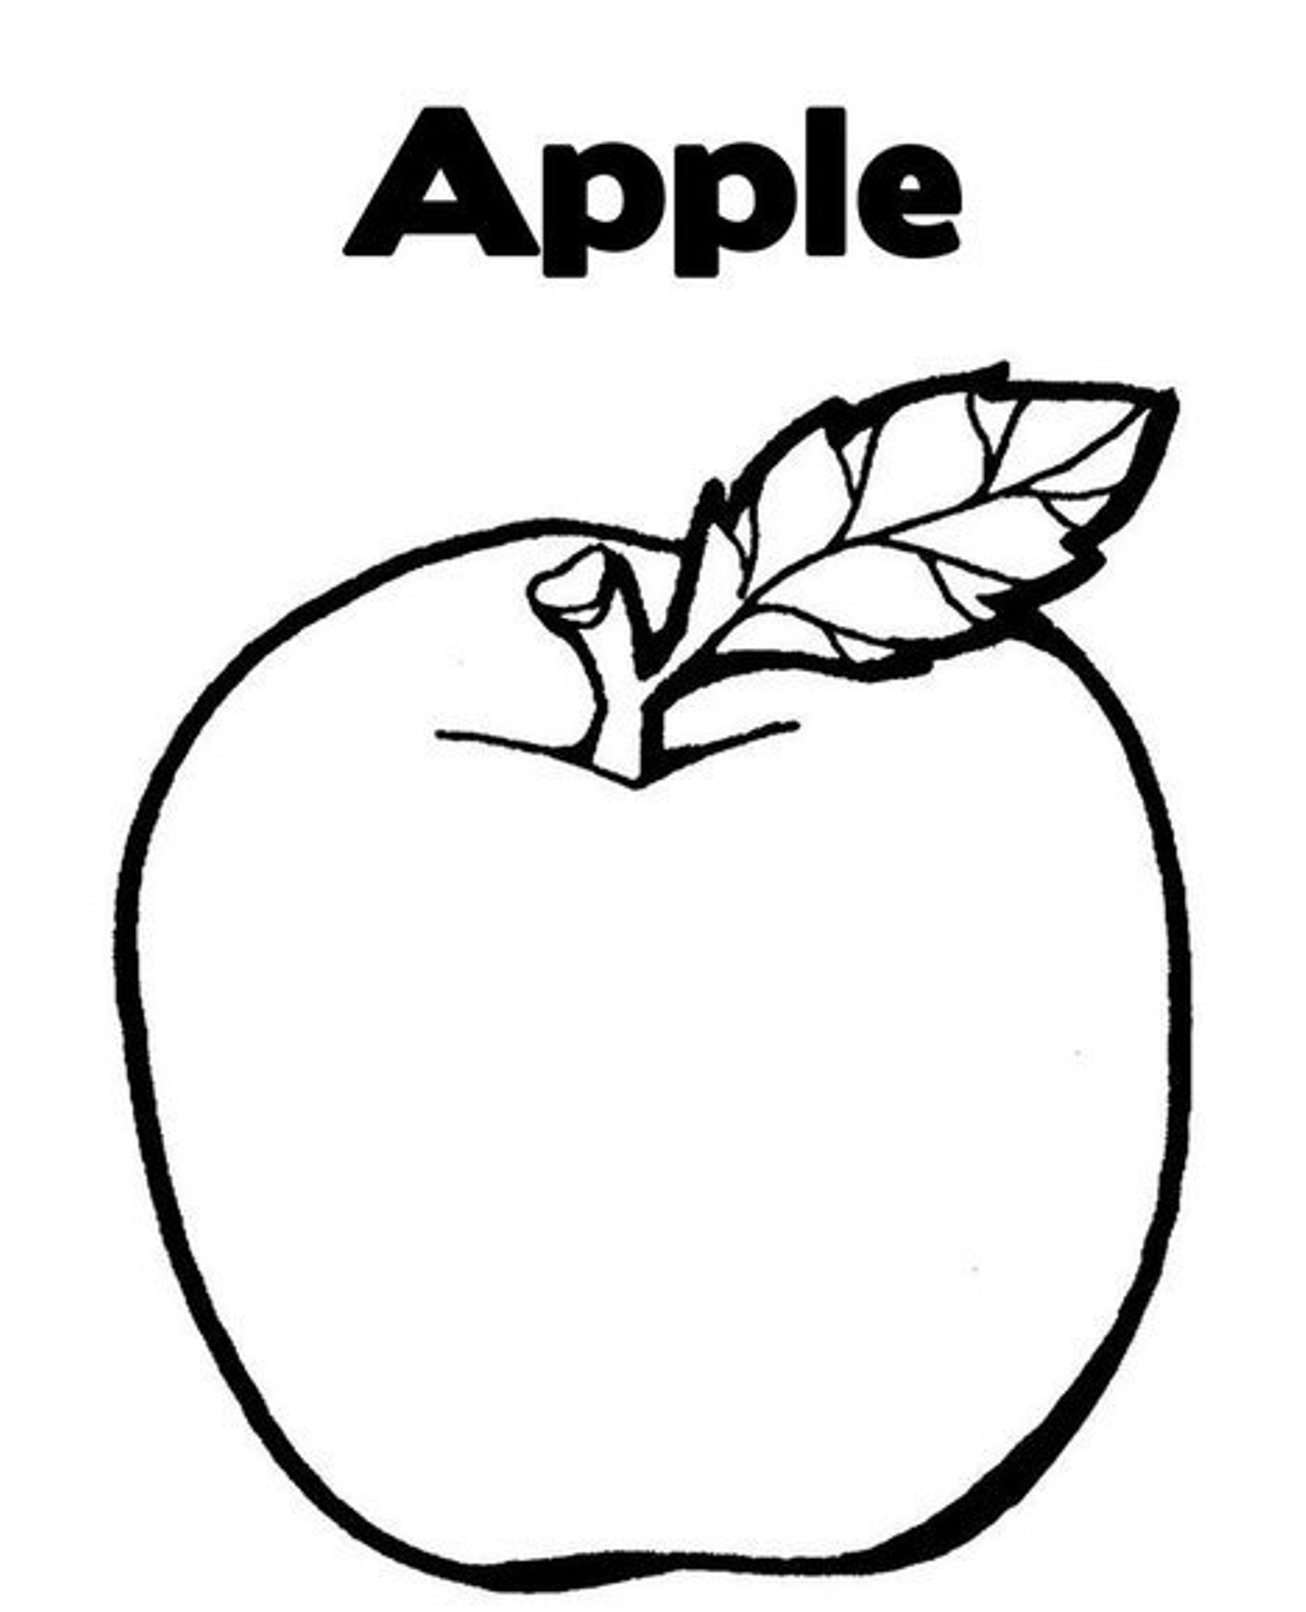 coloring page of an apple apple coloring pages fruit 101 coloring page apple an coloring of